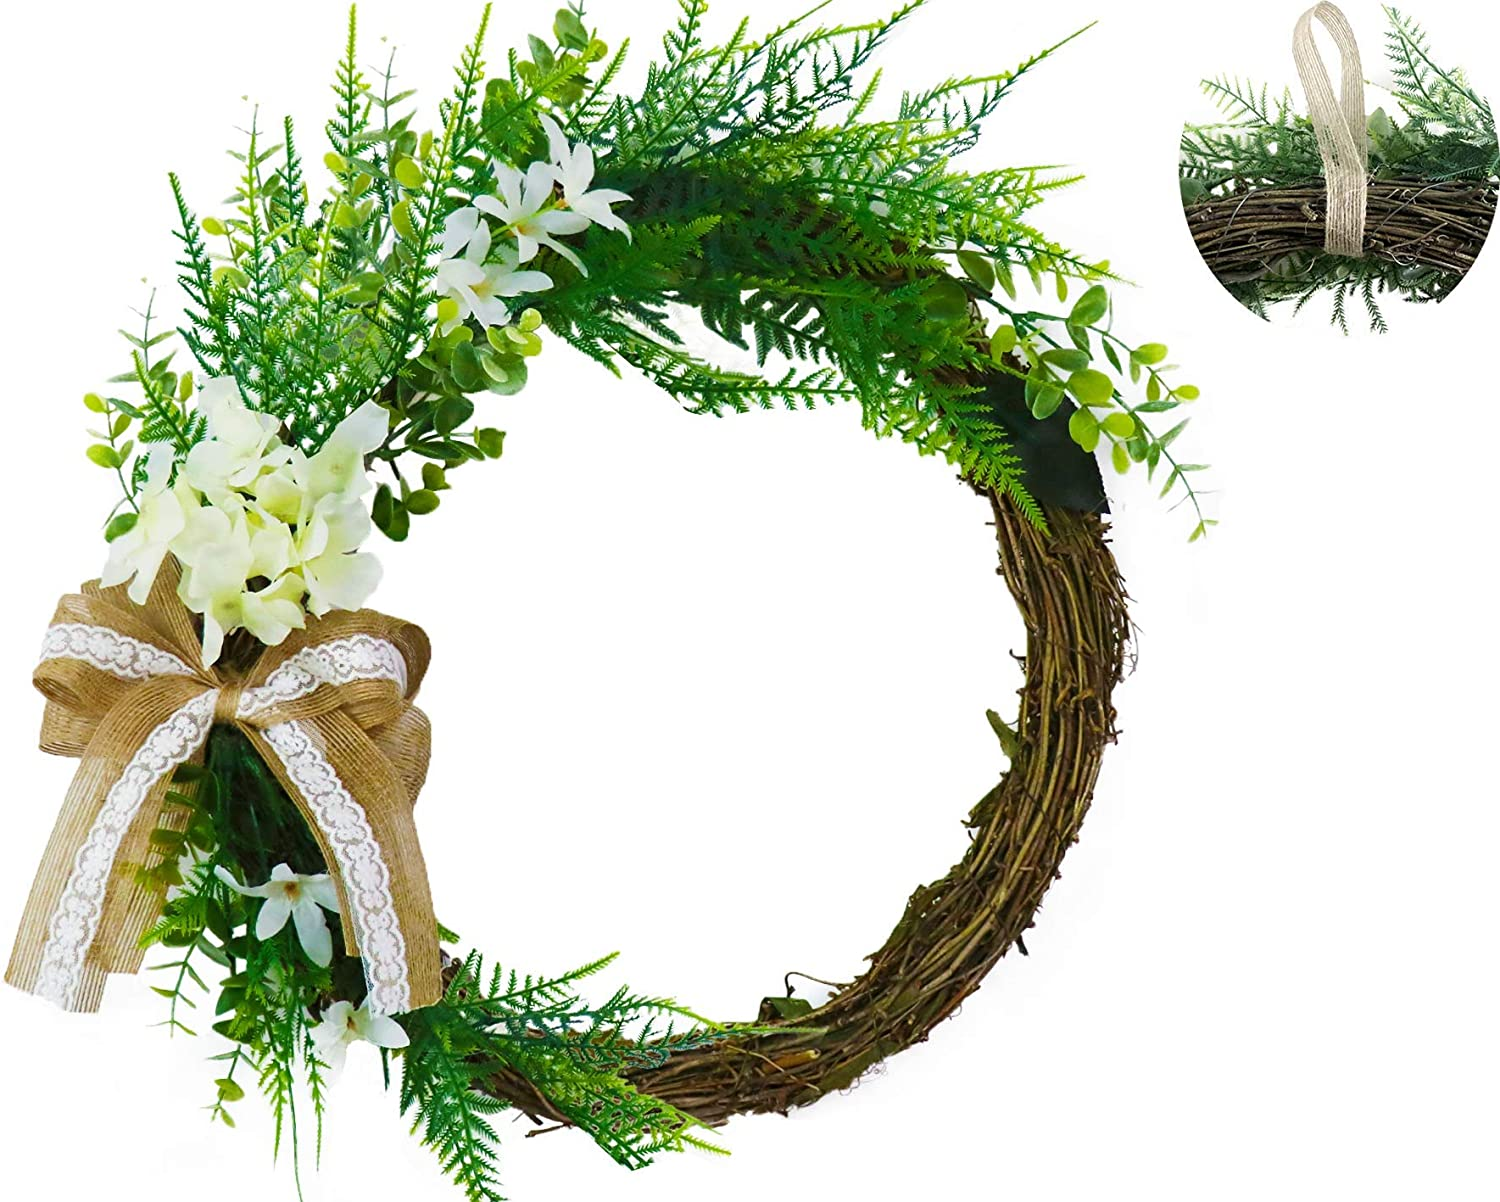 Abloomtouch Wreaths for Front Door - 16,5 inch Realistic White Hydrangea Artificial Summer Spring Wreaths for Front Door - Green Boxwood Wreath for Door Decor - Farmhouse Wreath - Greenery Wreath